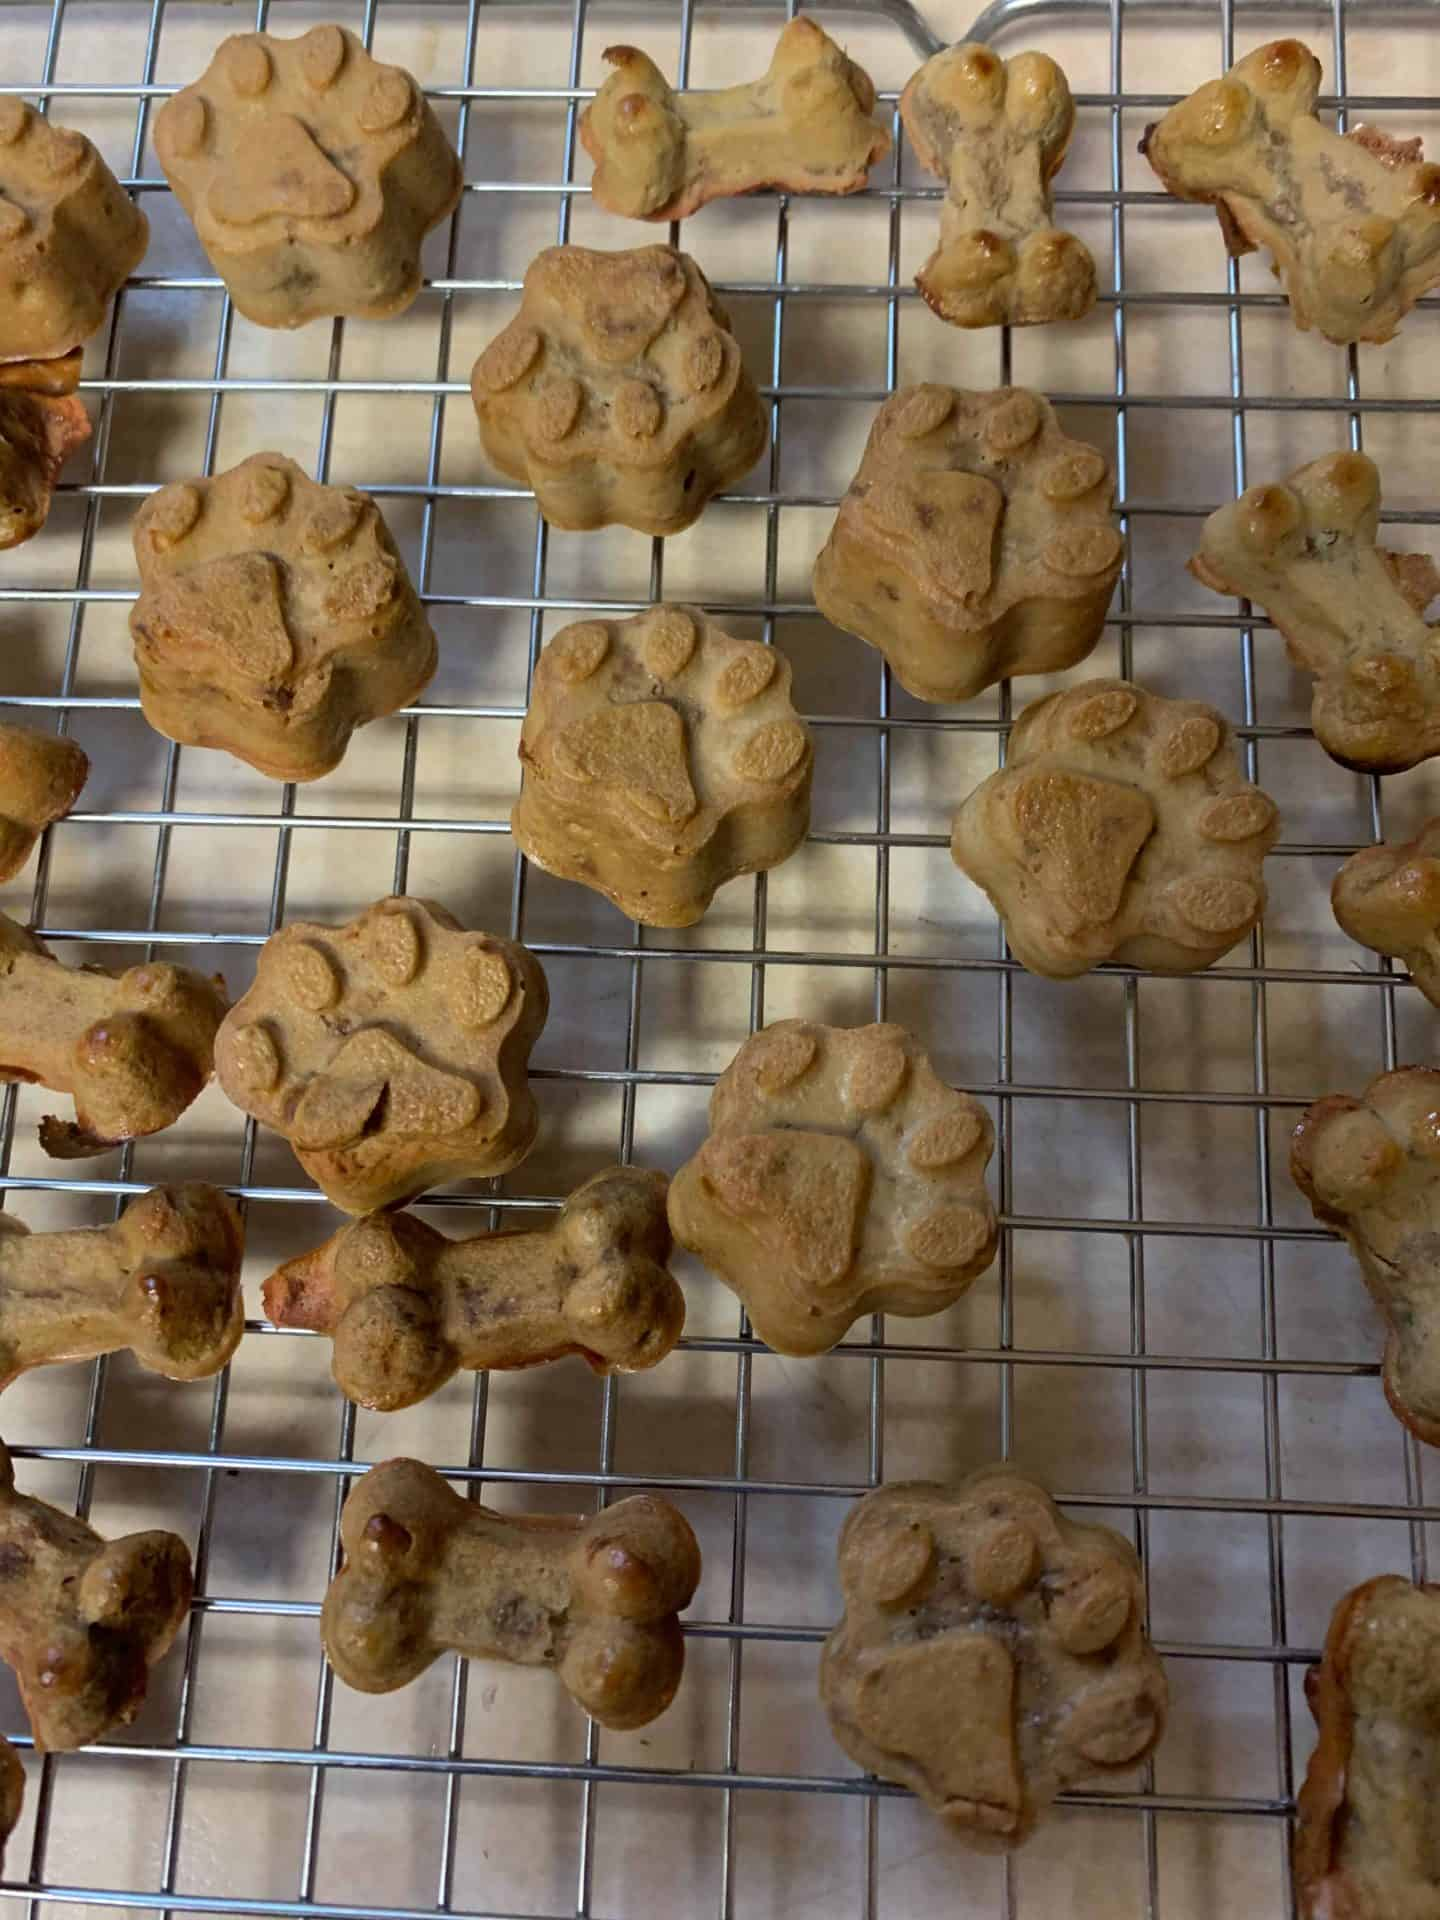 Liver cakes for dog baked with sweet potato - no flour